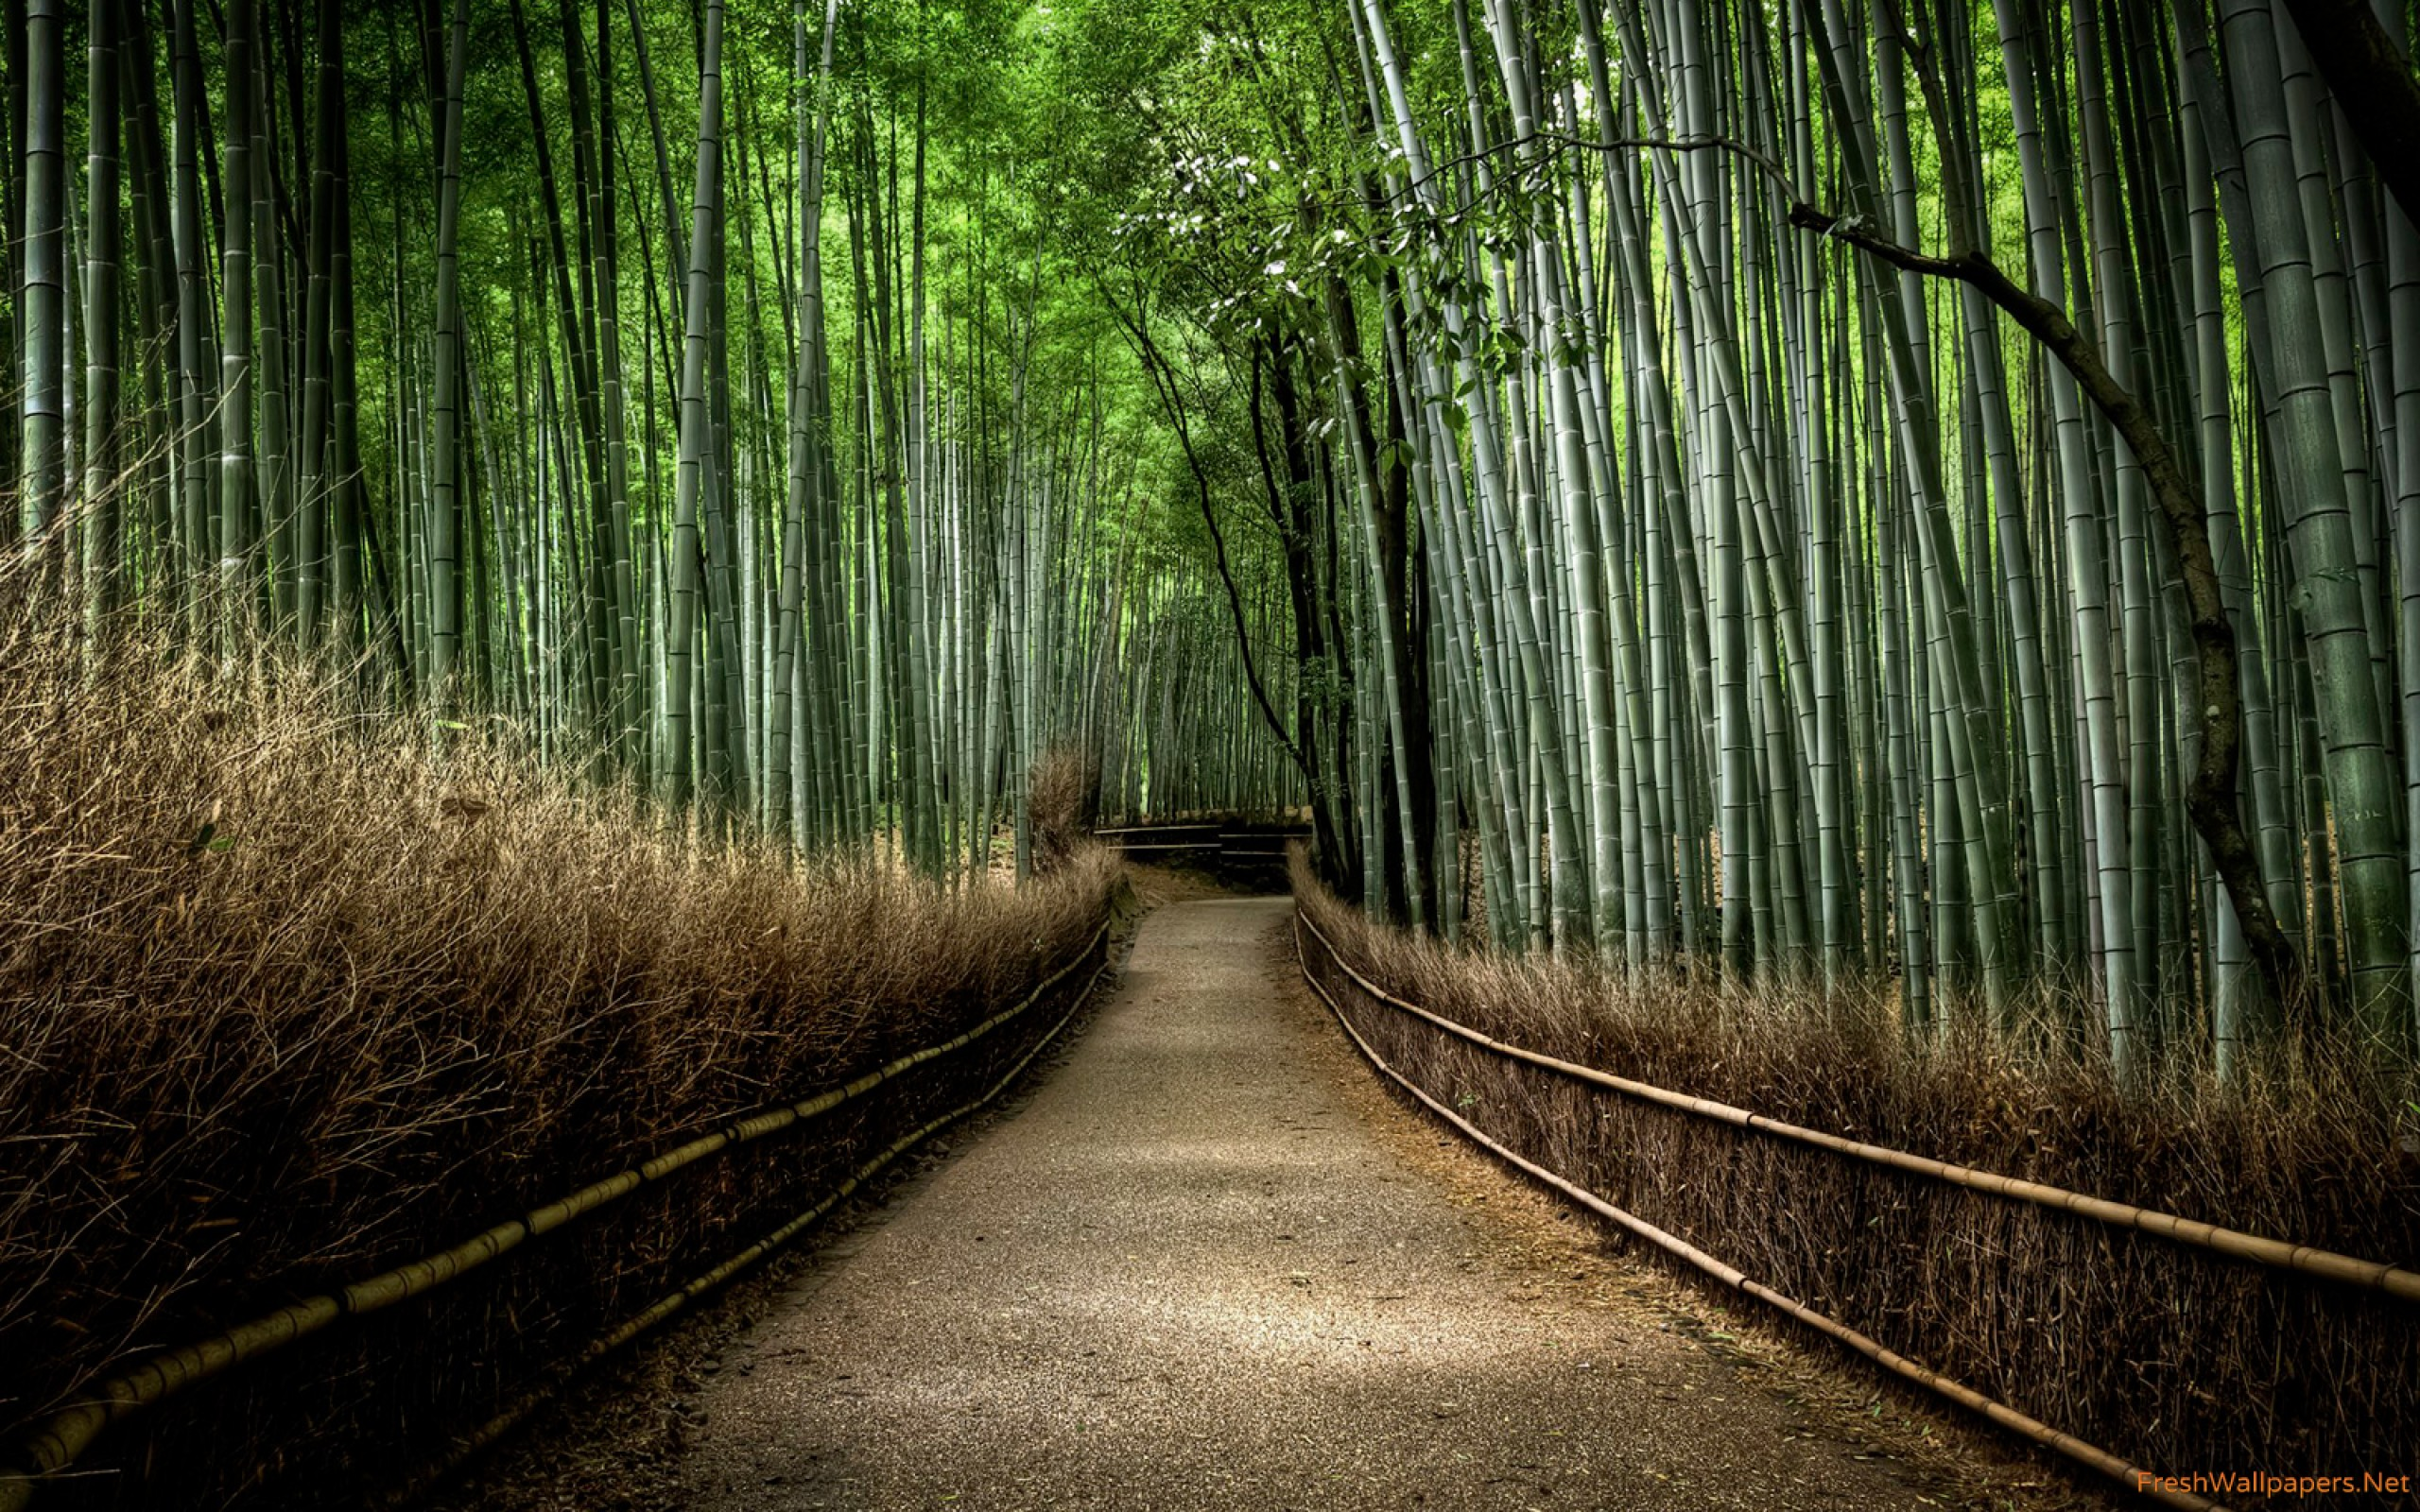 Japanese Bamboo Forest - HD Wallpaper